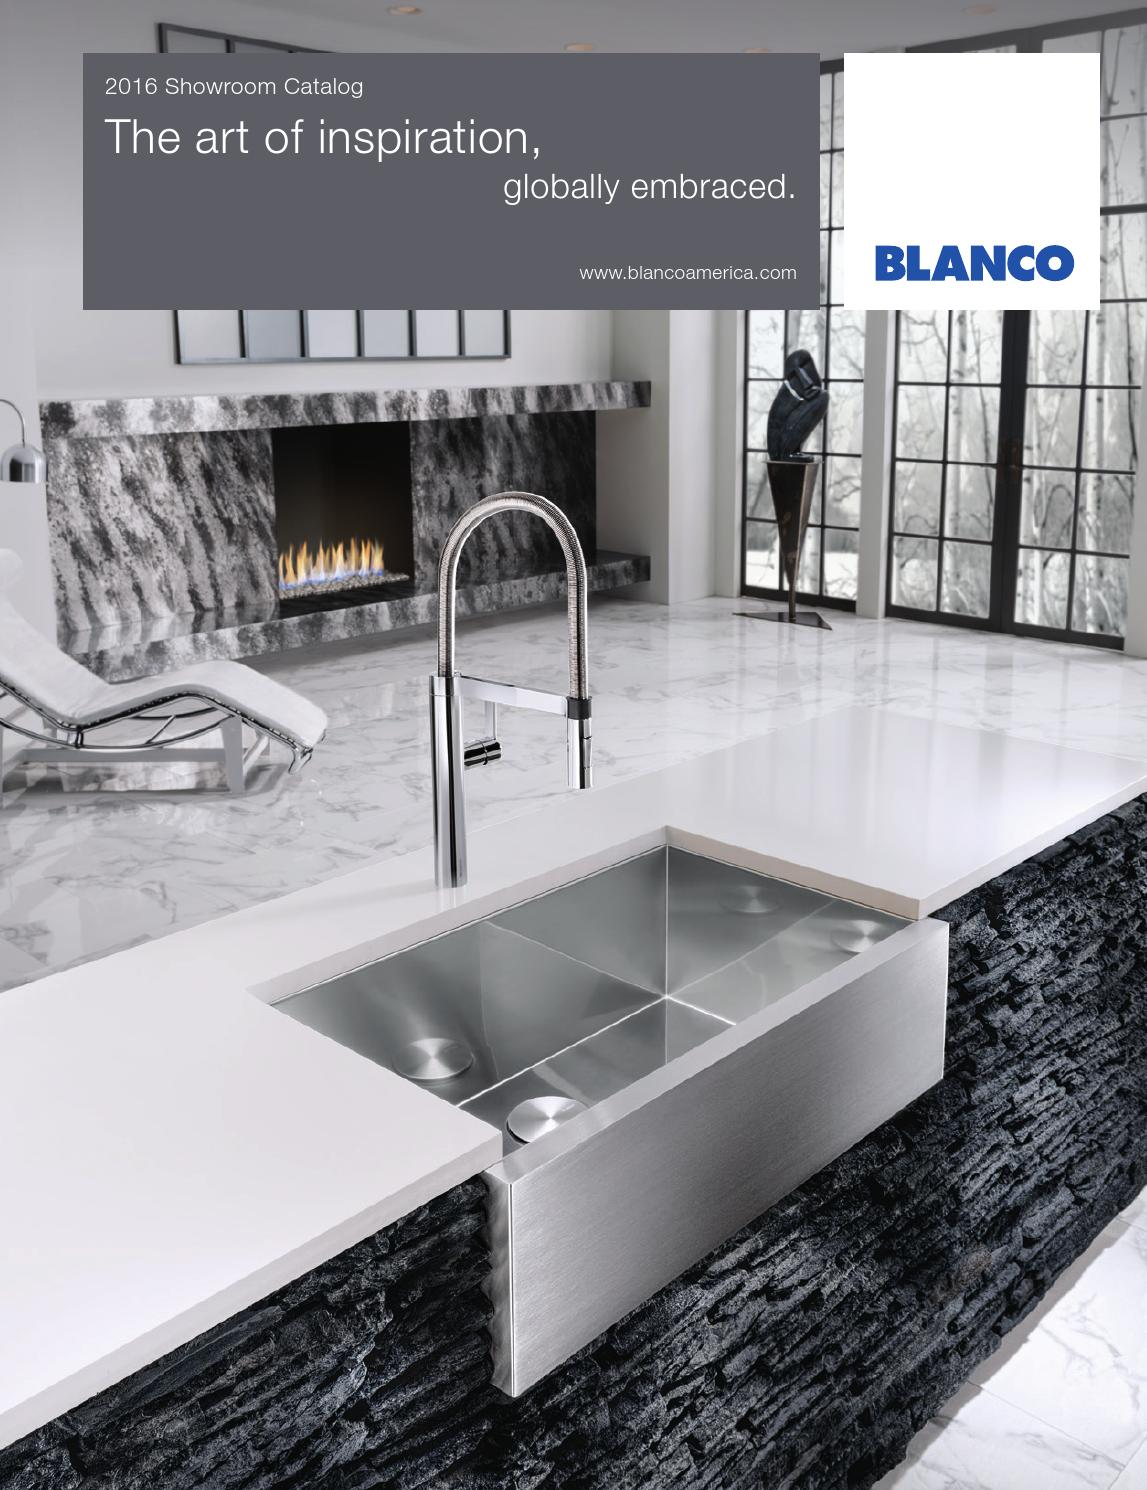 2016 blanco showroom catalog by blanco issuu for Blancoamerica com kitchen sinks